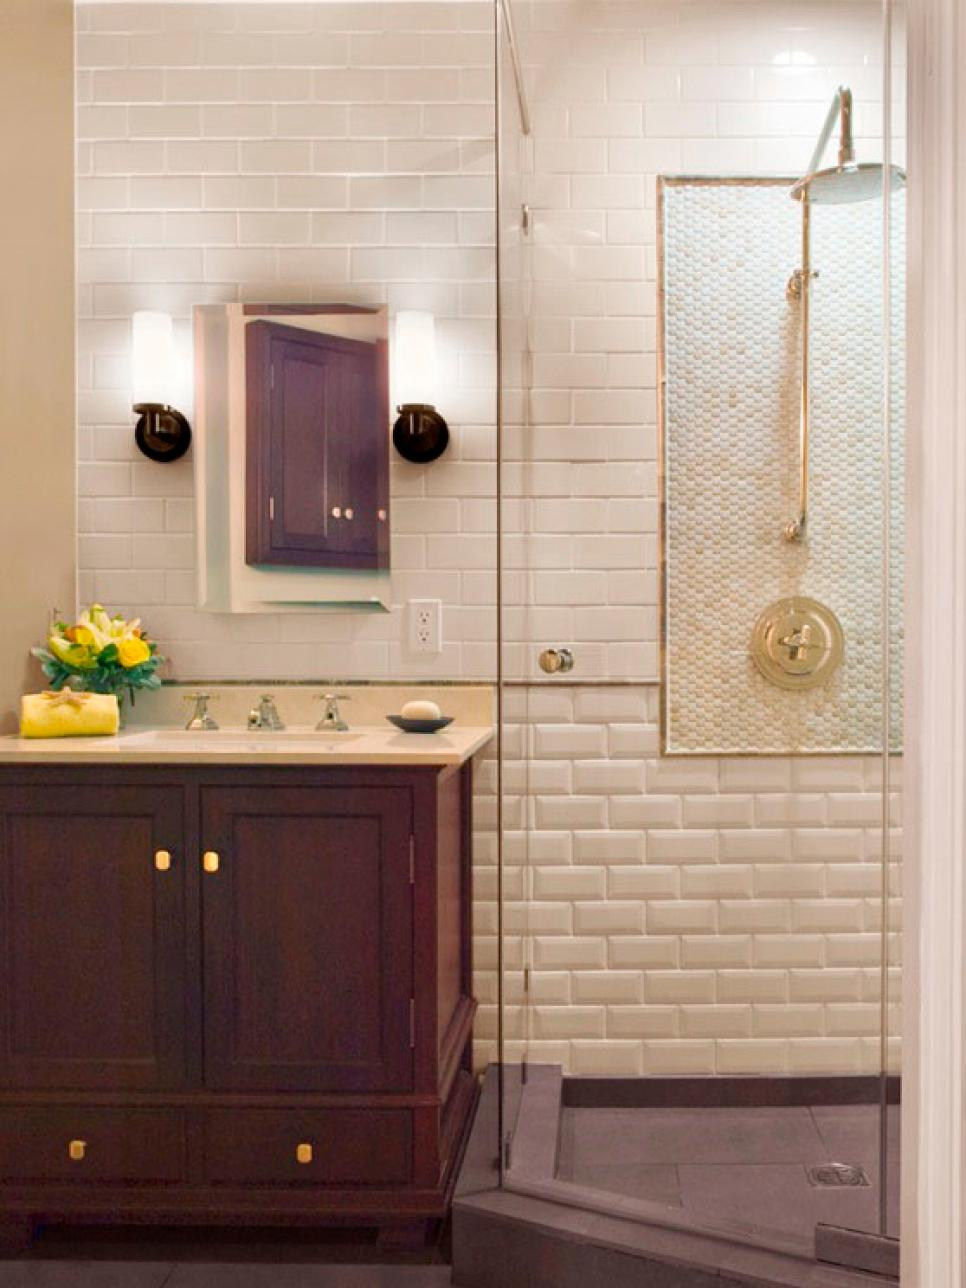 Bathroom shower designs hgtv - Pictures of bathroom designs ...